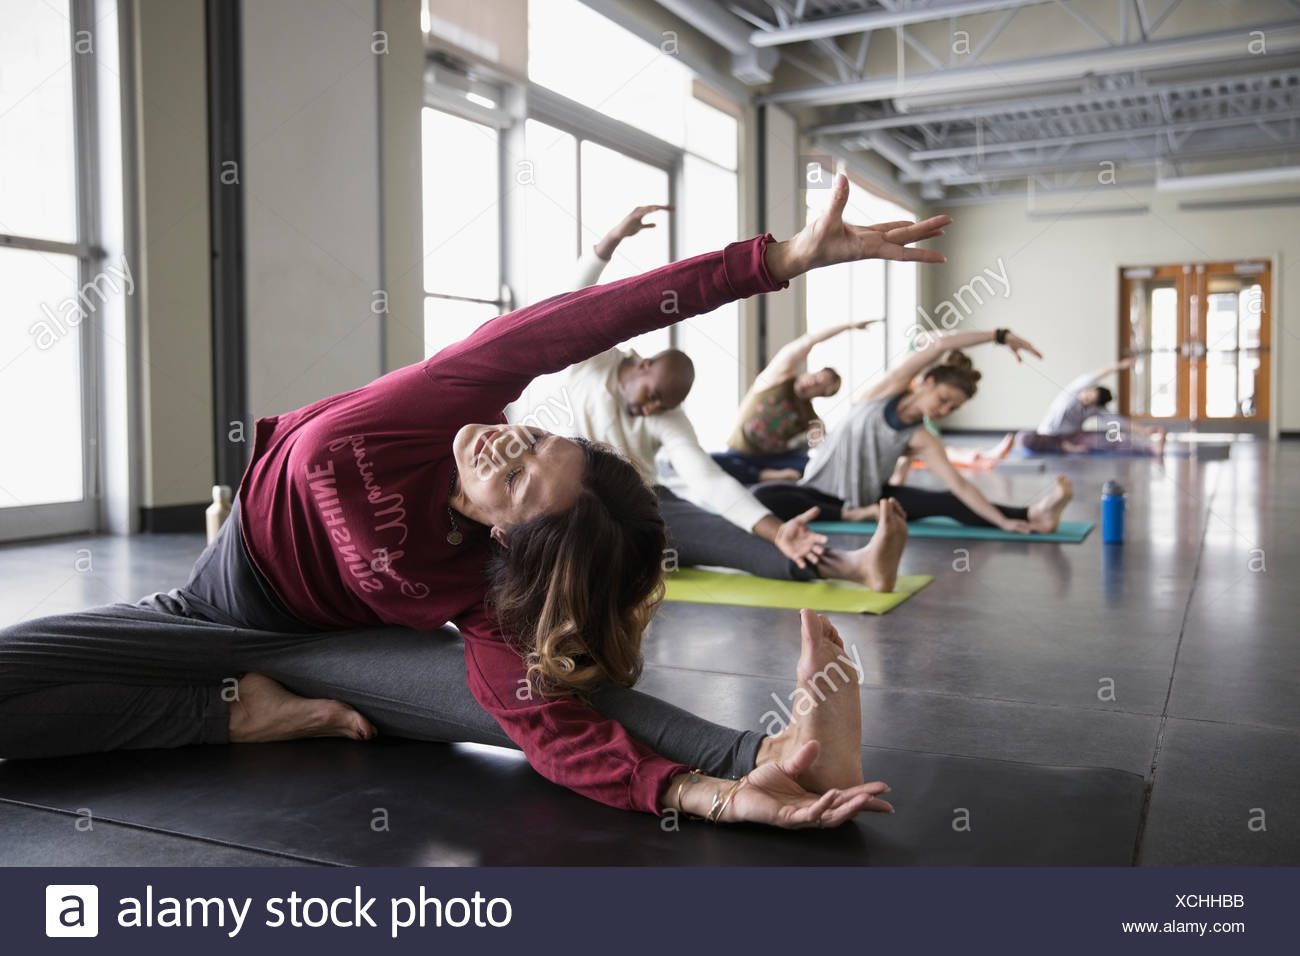 Woman practicing wide legged seated side bend in yoga class studio Stock Photo